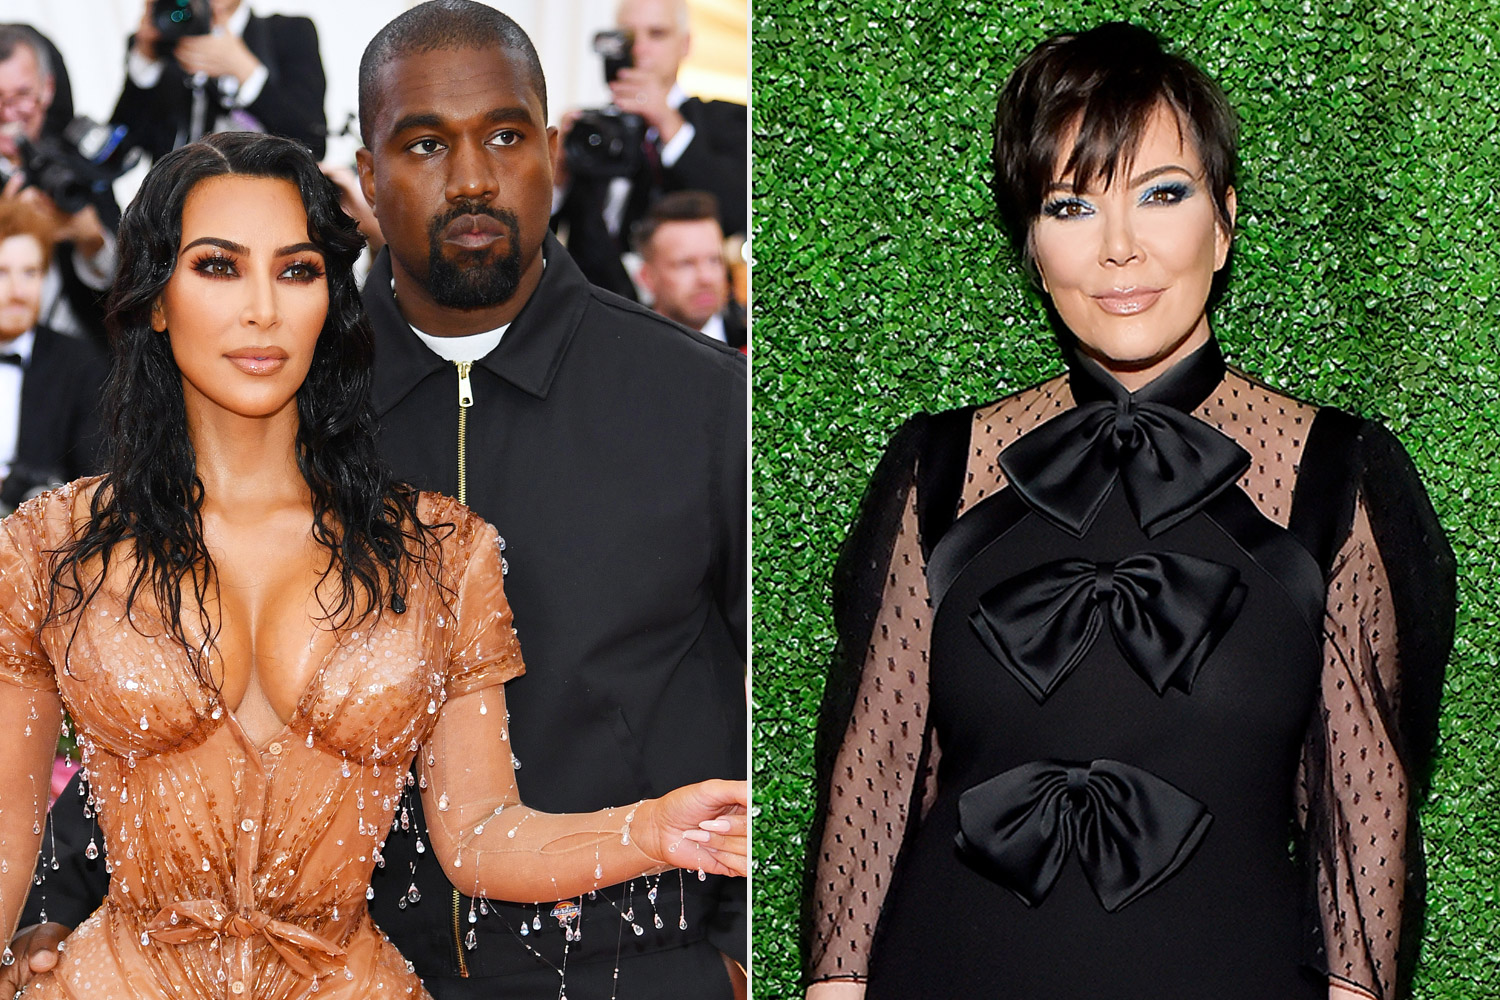 Kim and Kanye split with Kris Jenner